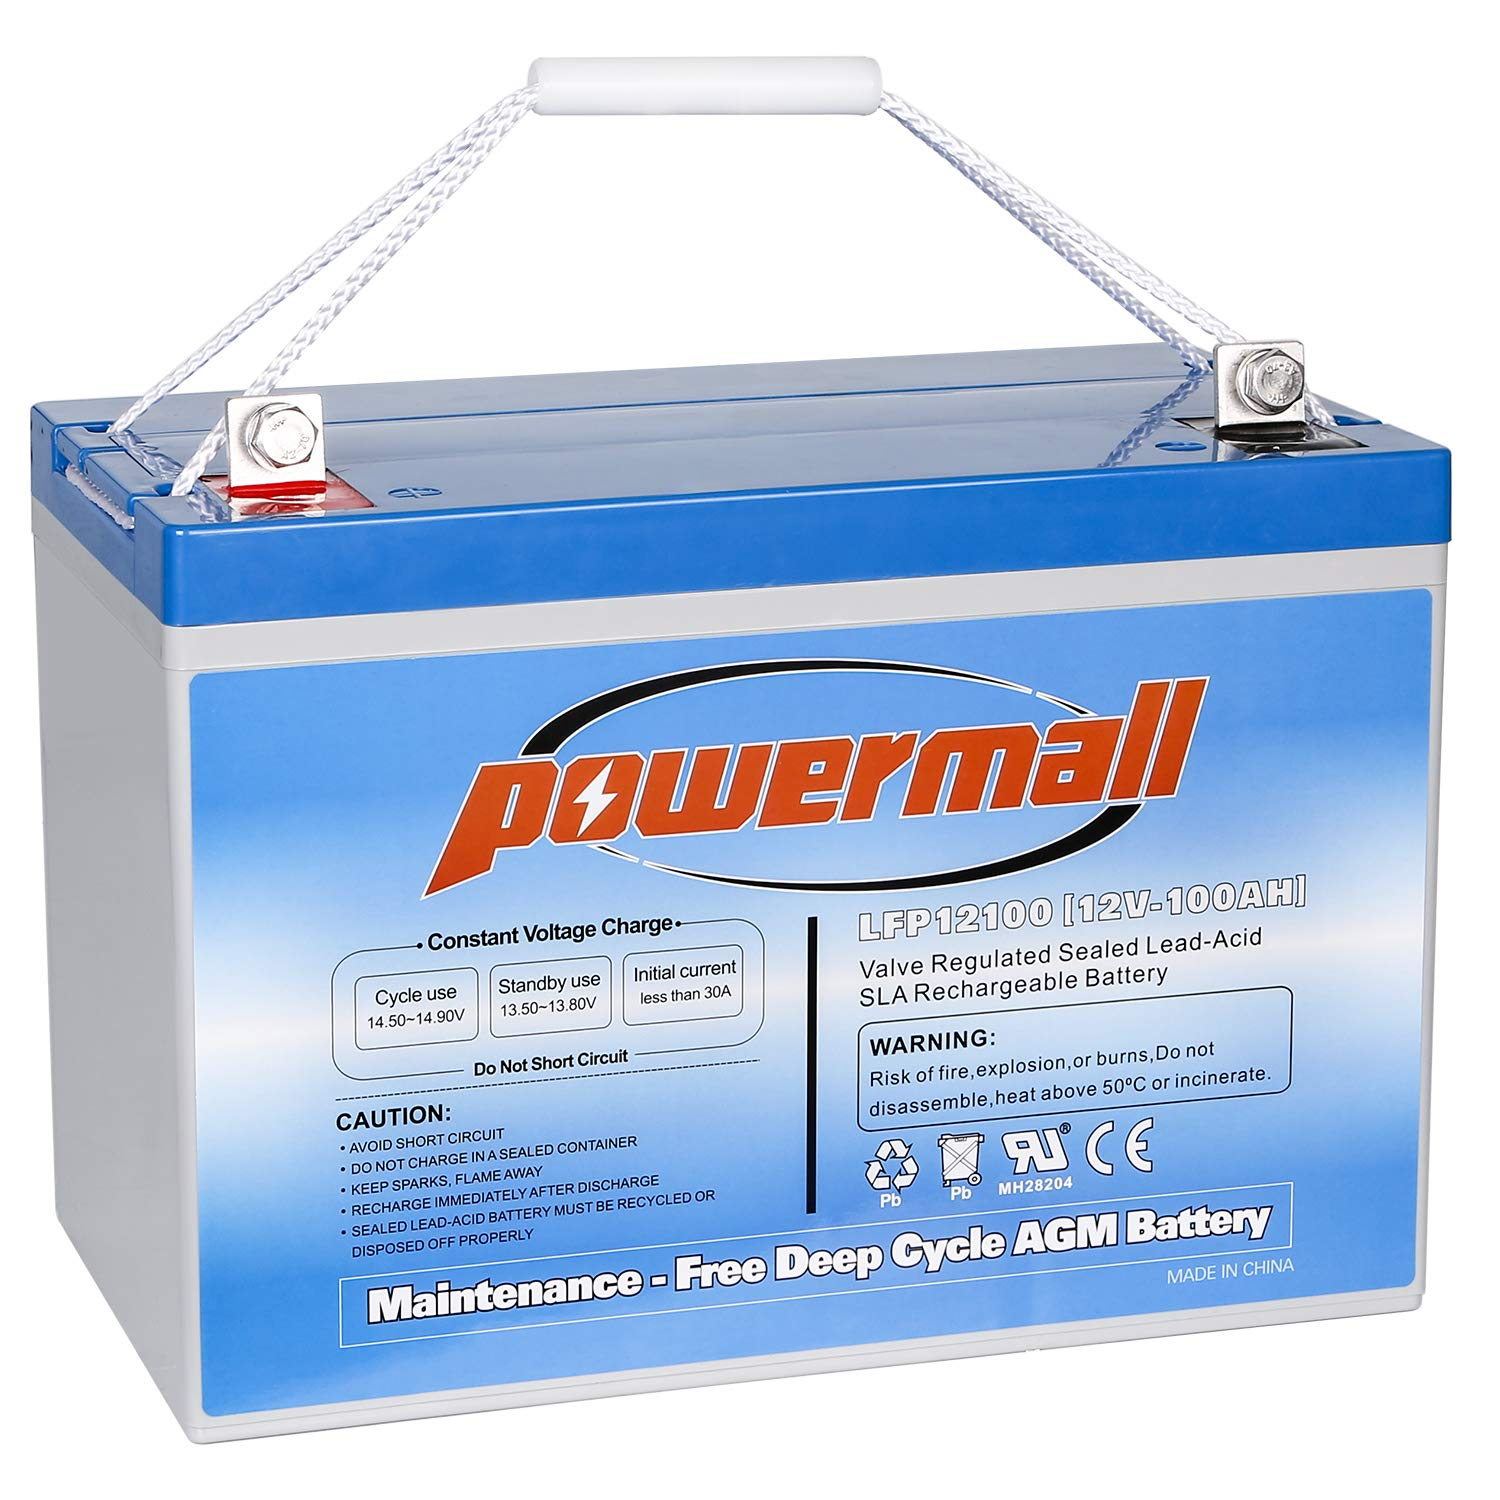 Powermall Battery Applications Trailer Universal